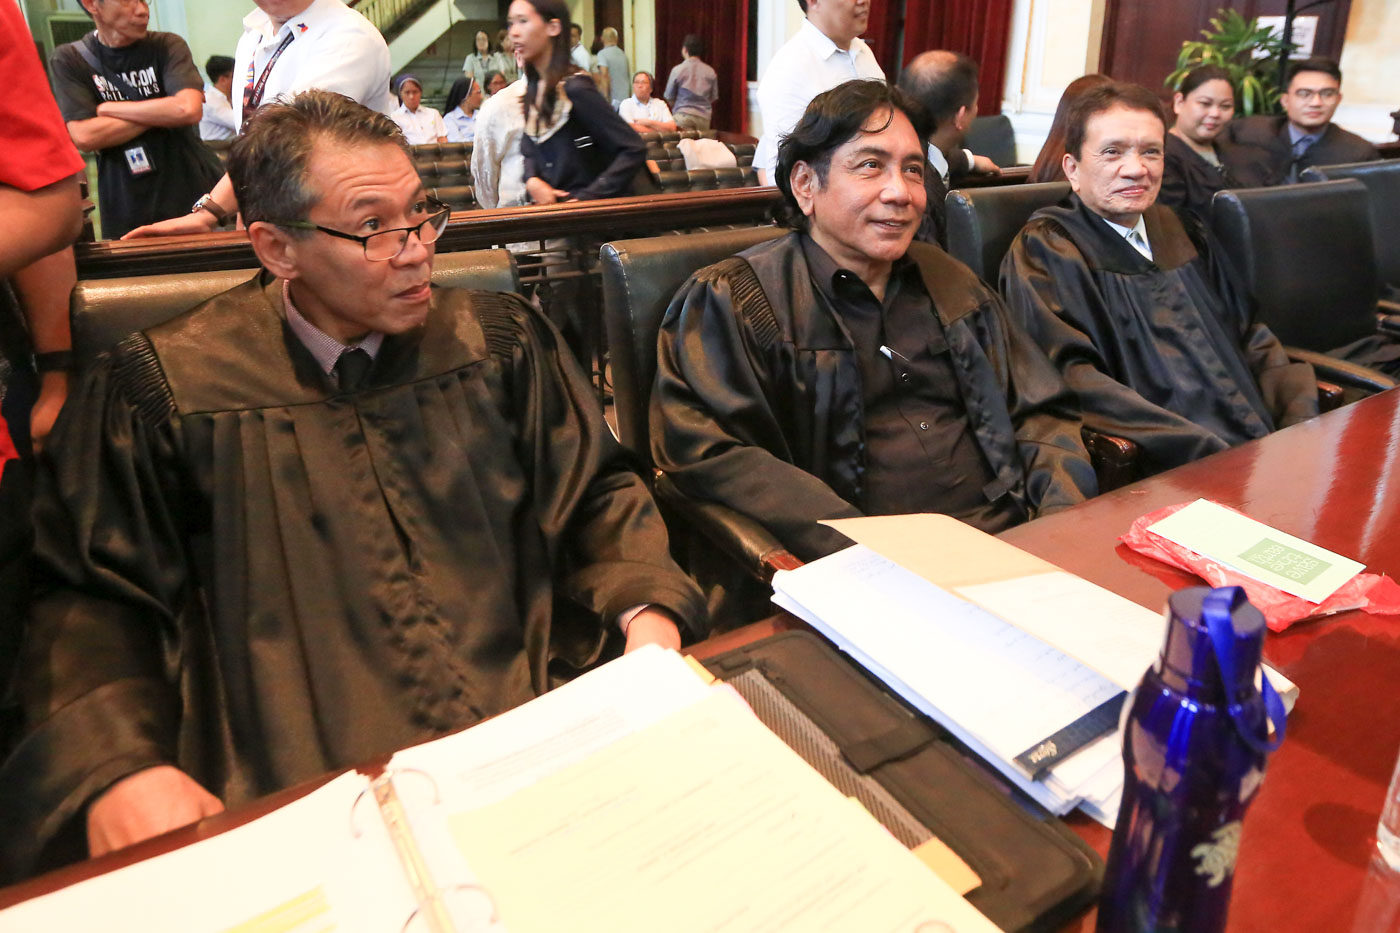 FLAG. Dean Chel Diokno, Felix Mariu00f1as, and Alexander Padilla of the Free Legal Assistance Group (FLAG), petitioners in the case, attend the oral arguments on November 28, 2017. Photo by Ben Nabong/Rappler